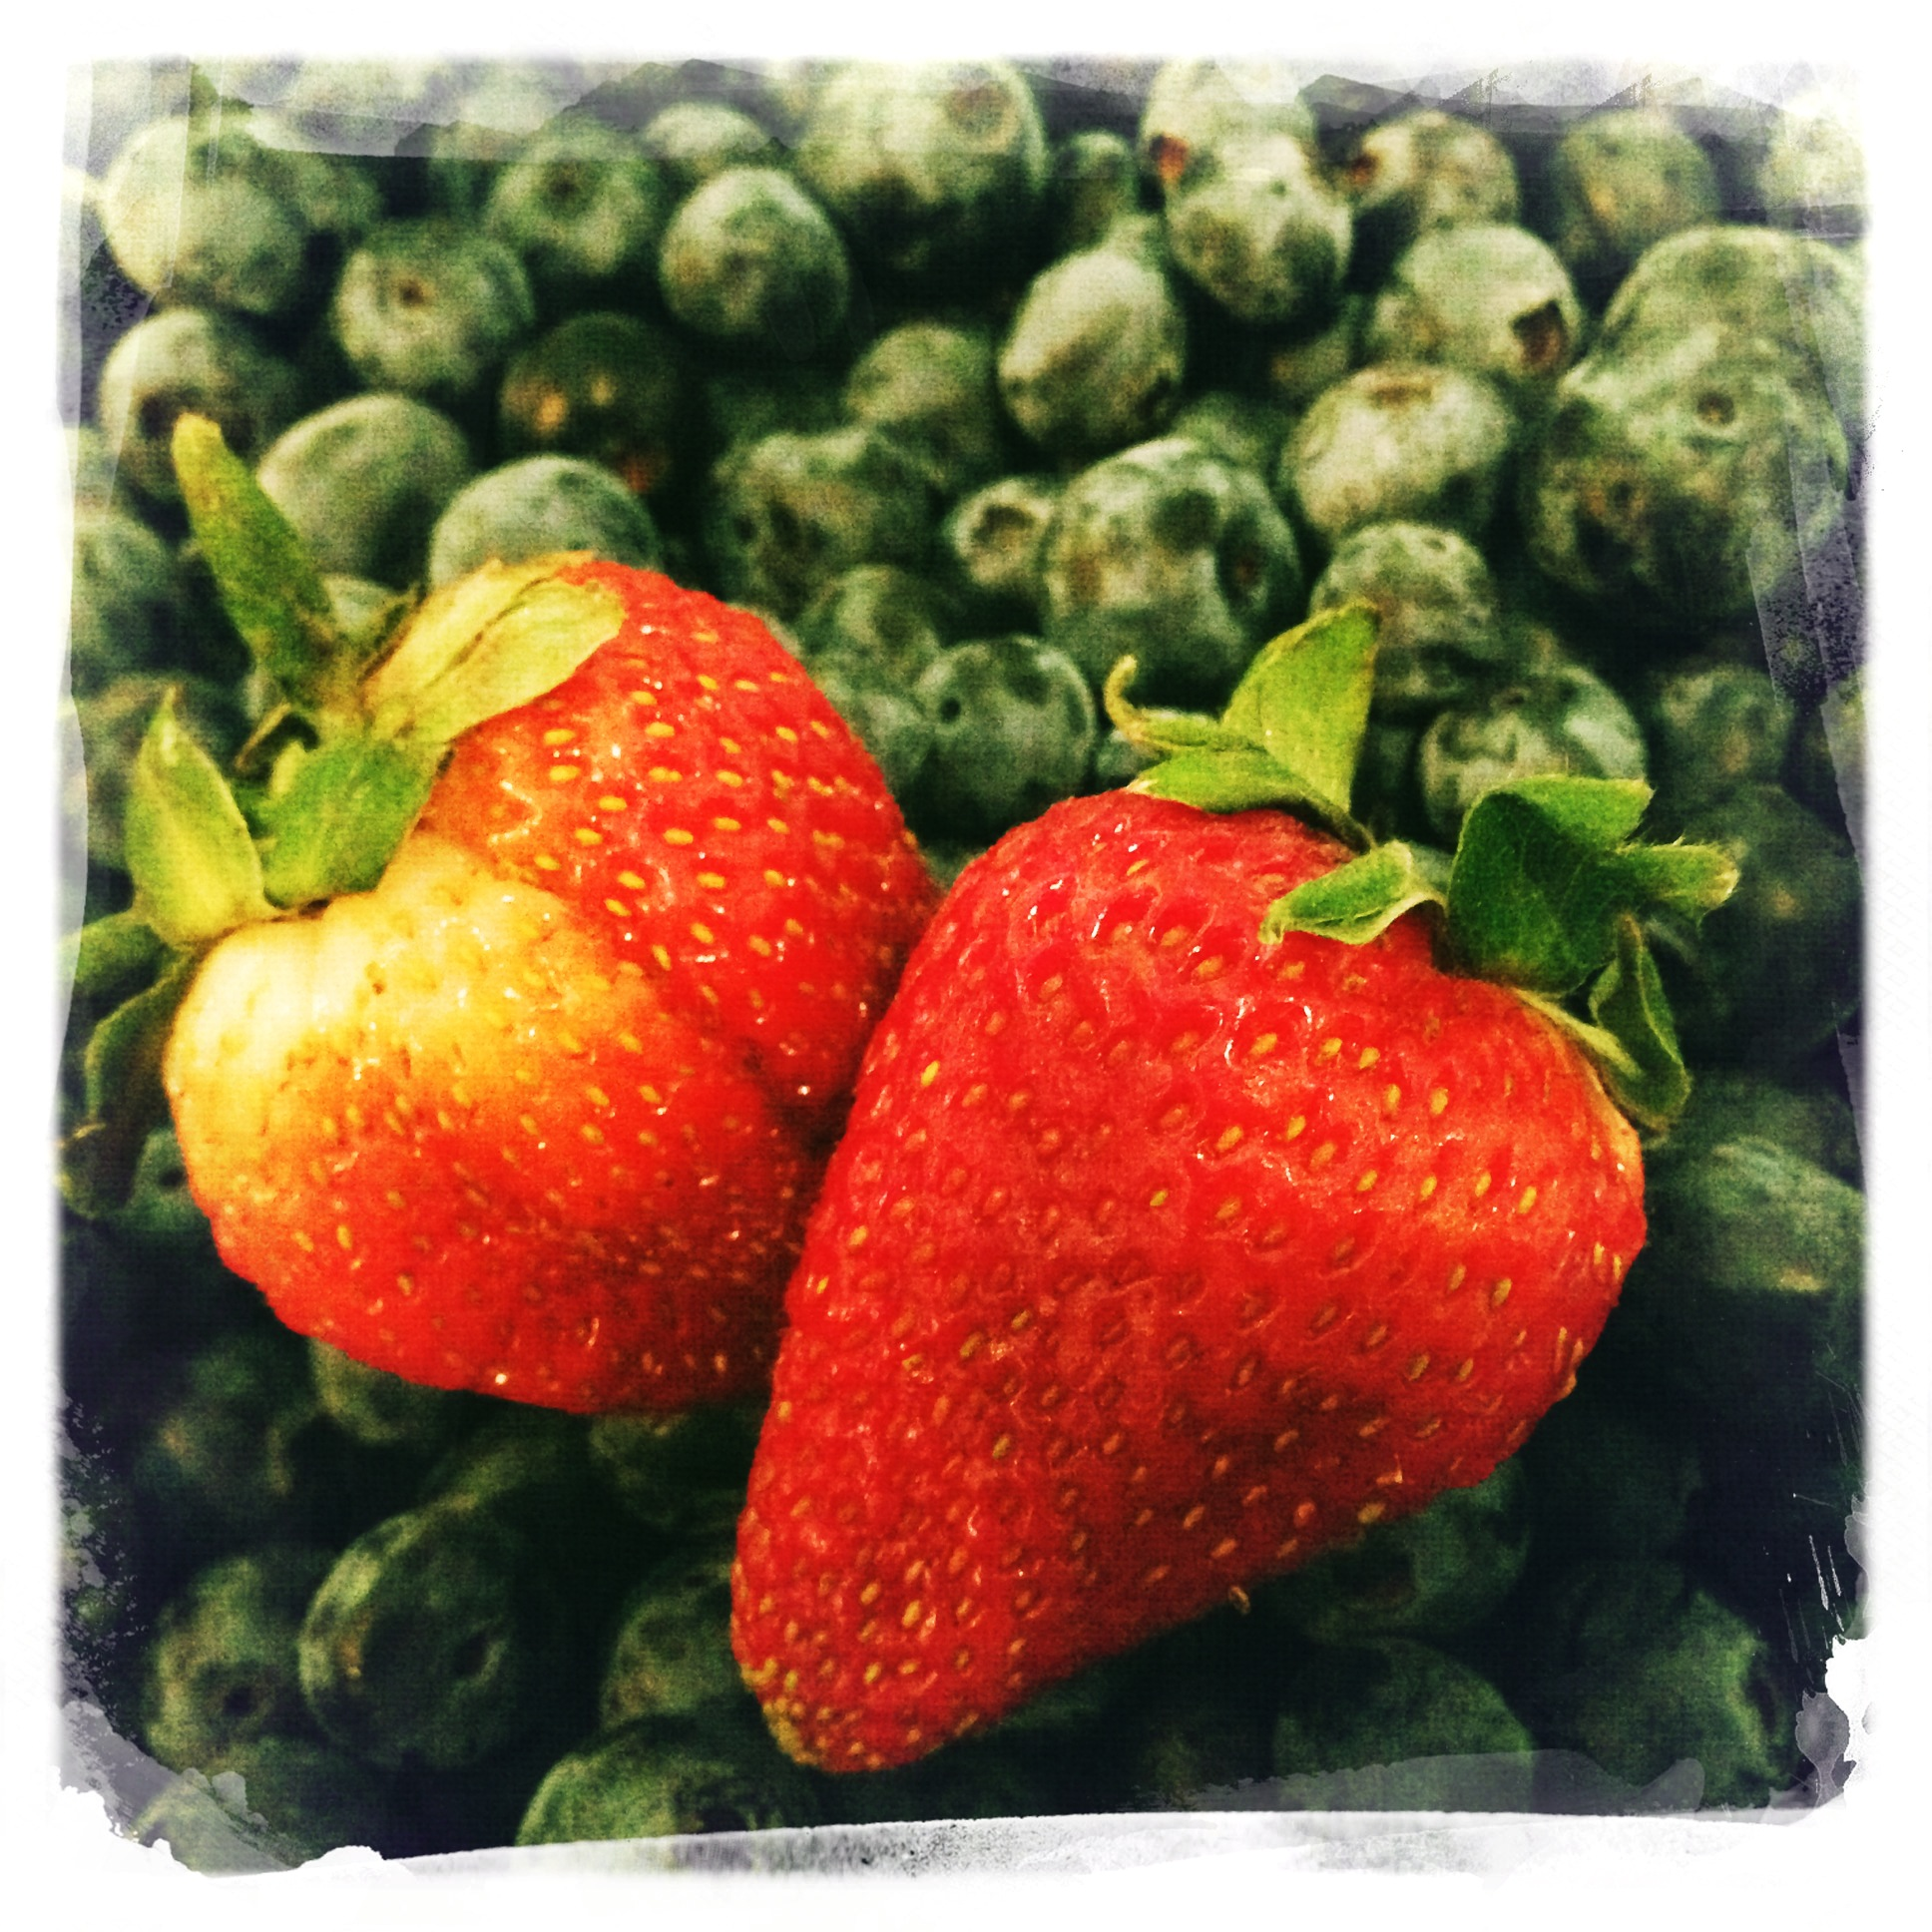 blueberrys and strawberrys pic.JPG